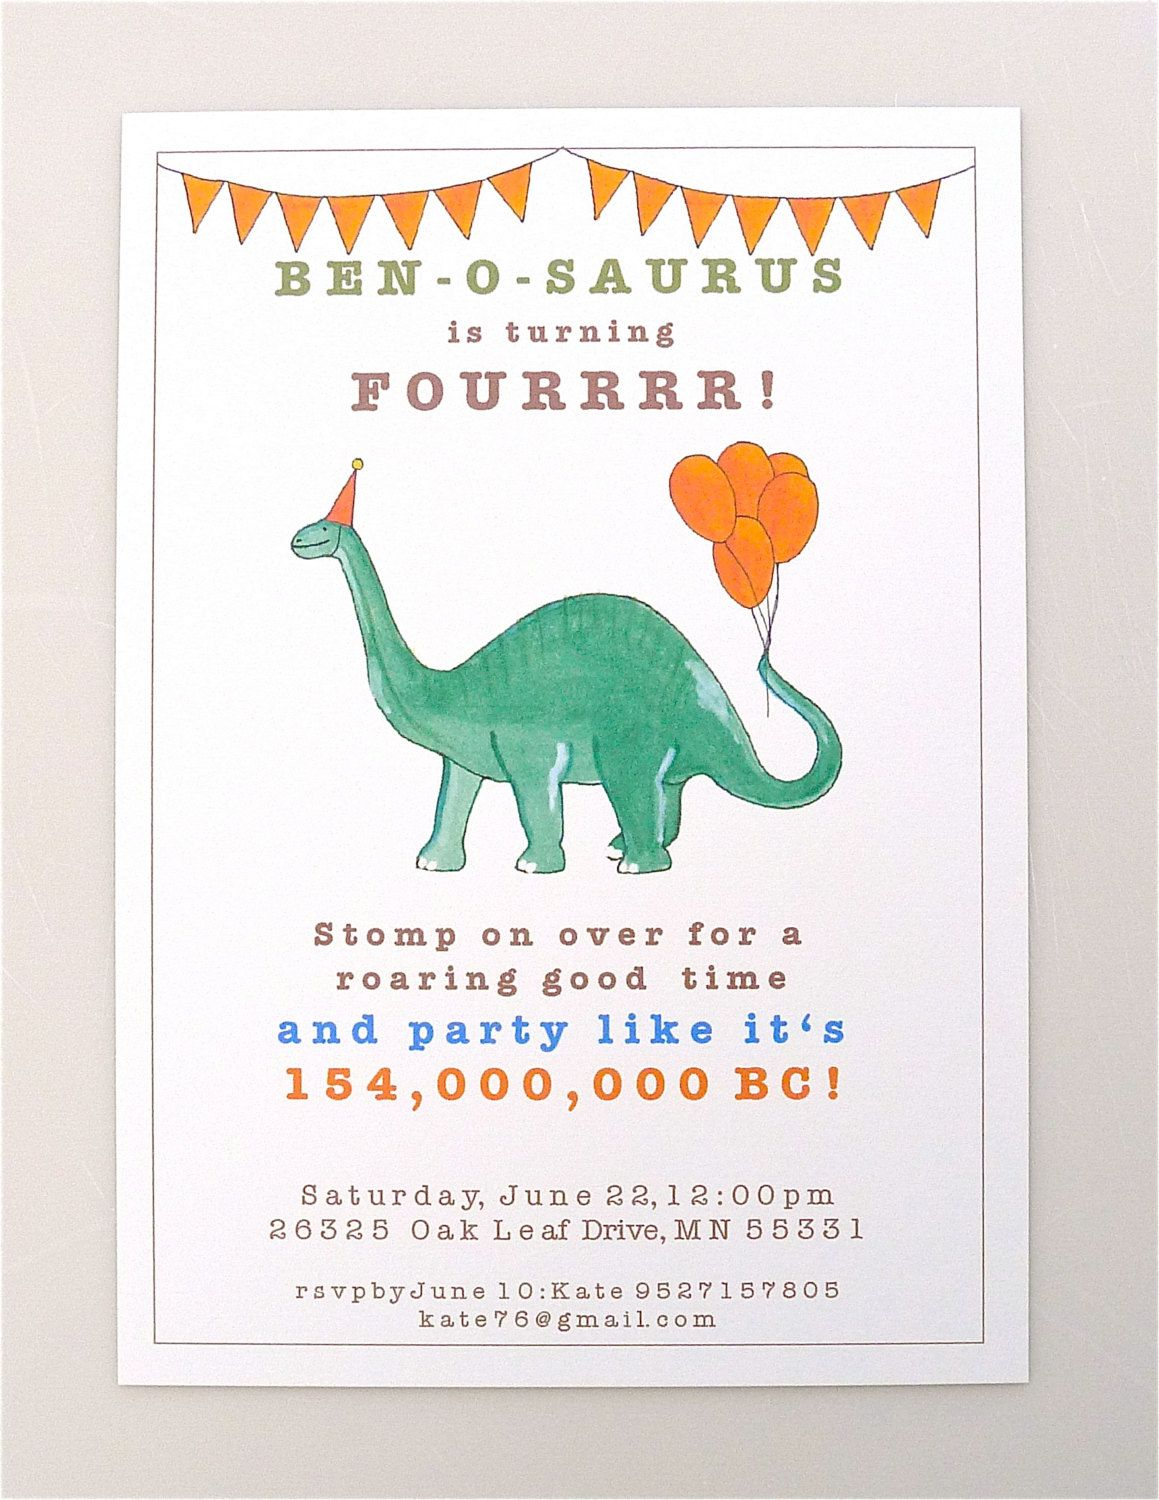 Dinosaur Birthday Invitation Dinosaur Invitation Dinosaur